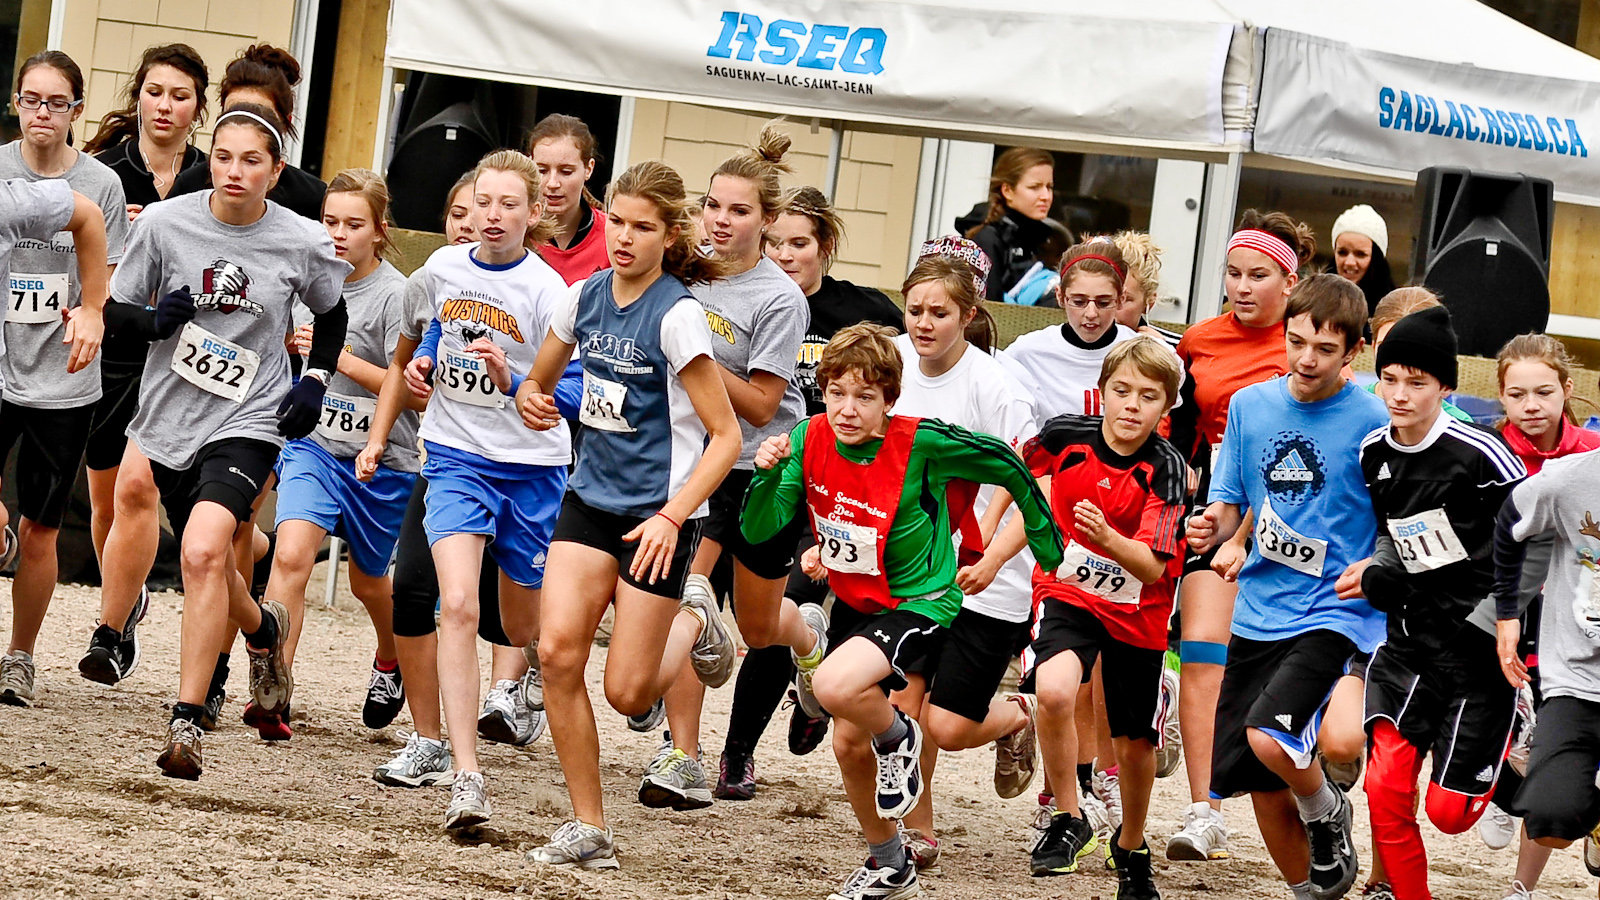 rsz_rseq_2011-2012_cross-country-004.jpg